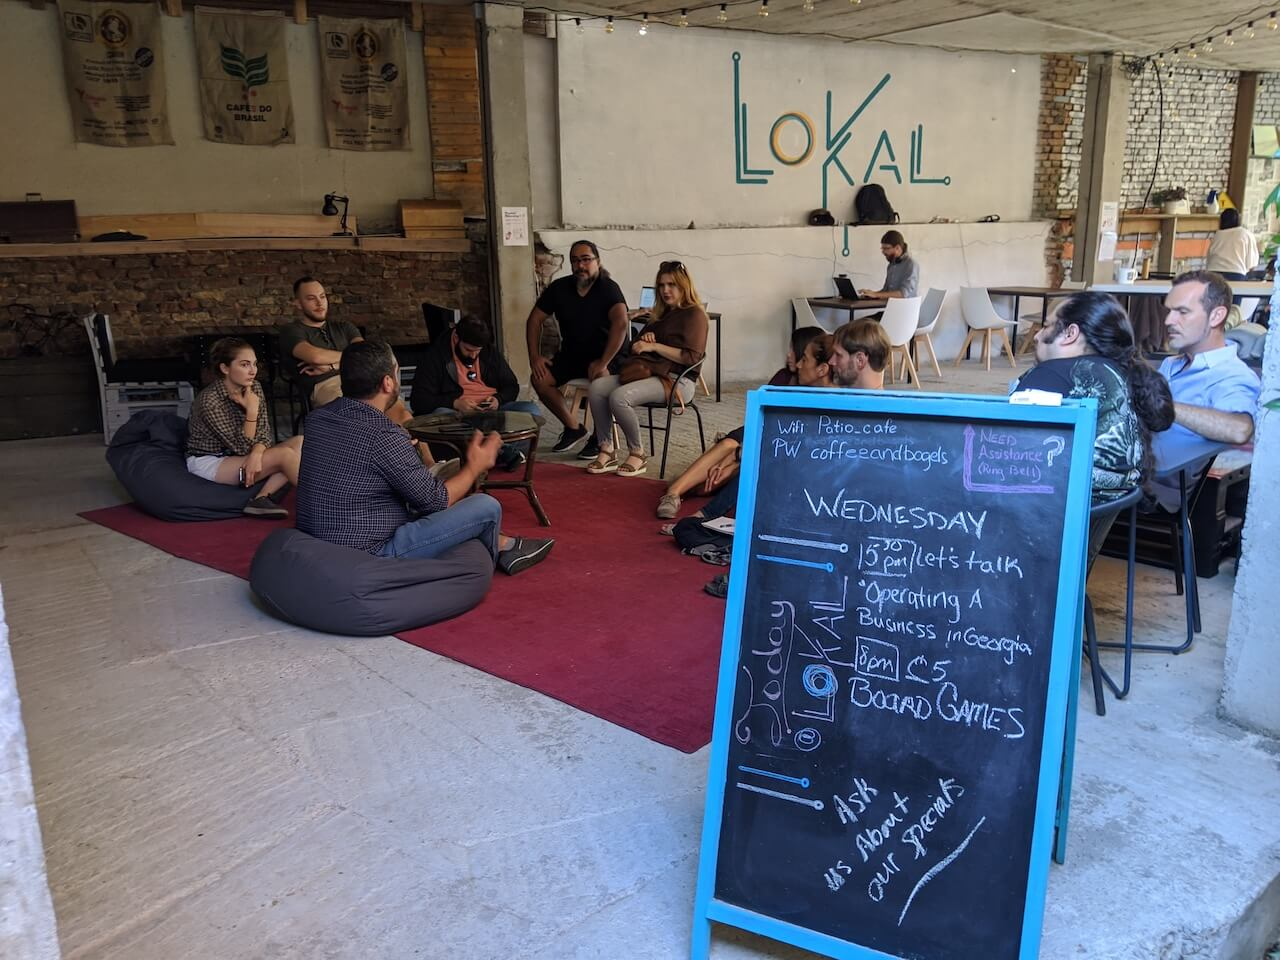 Community event at LOKAL